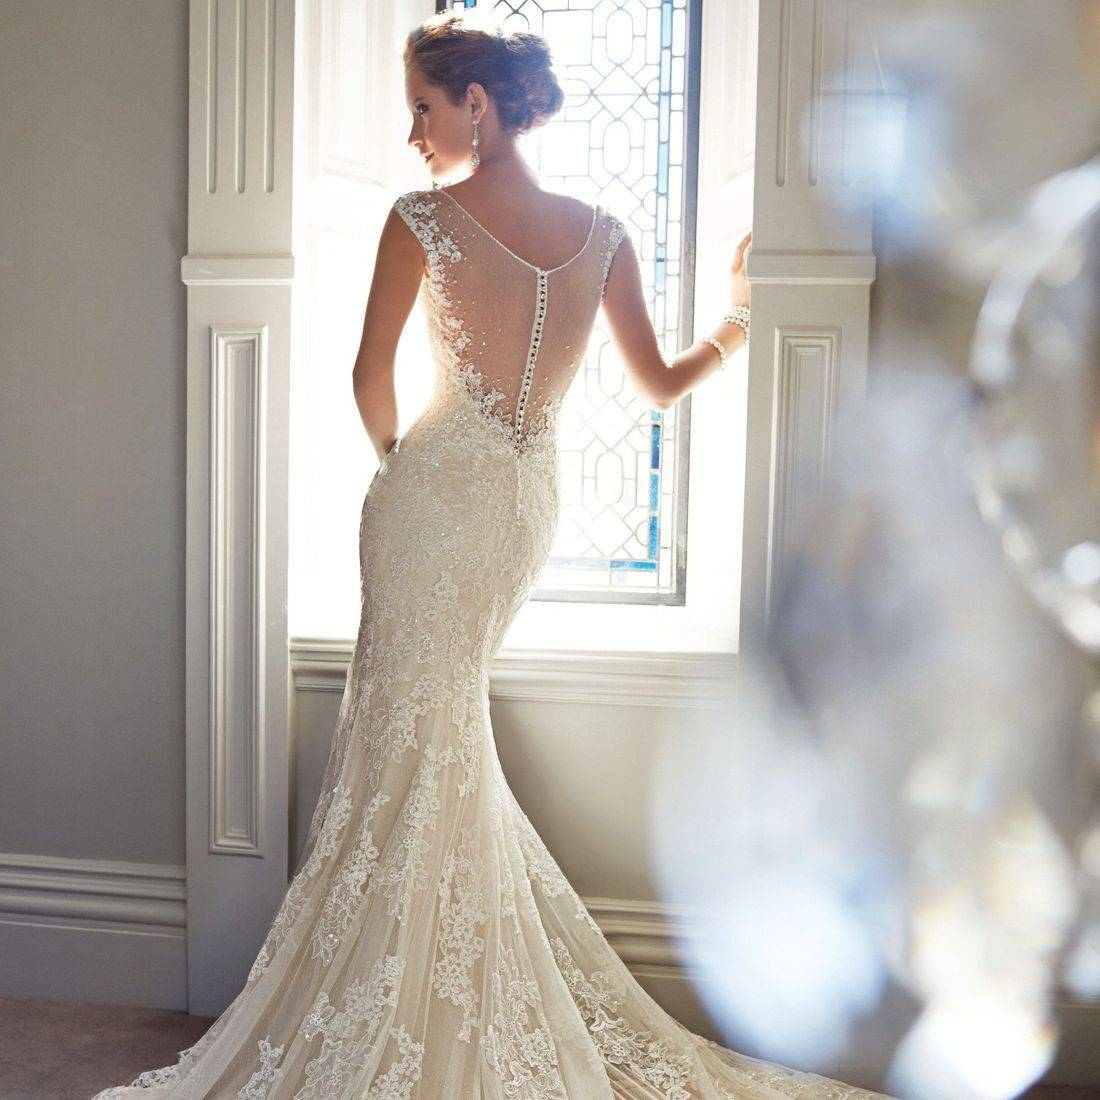 Sophia Tolli wedding dress, Sophia Tolli, fit and flare wedding dress, lace wedding dress, dipped back wedding dress, illusion back wedding dress, wedding dress with illusion back